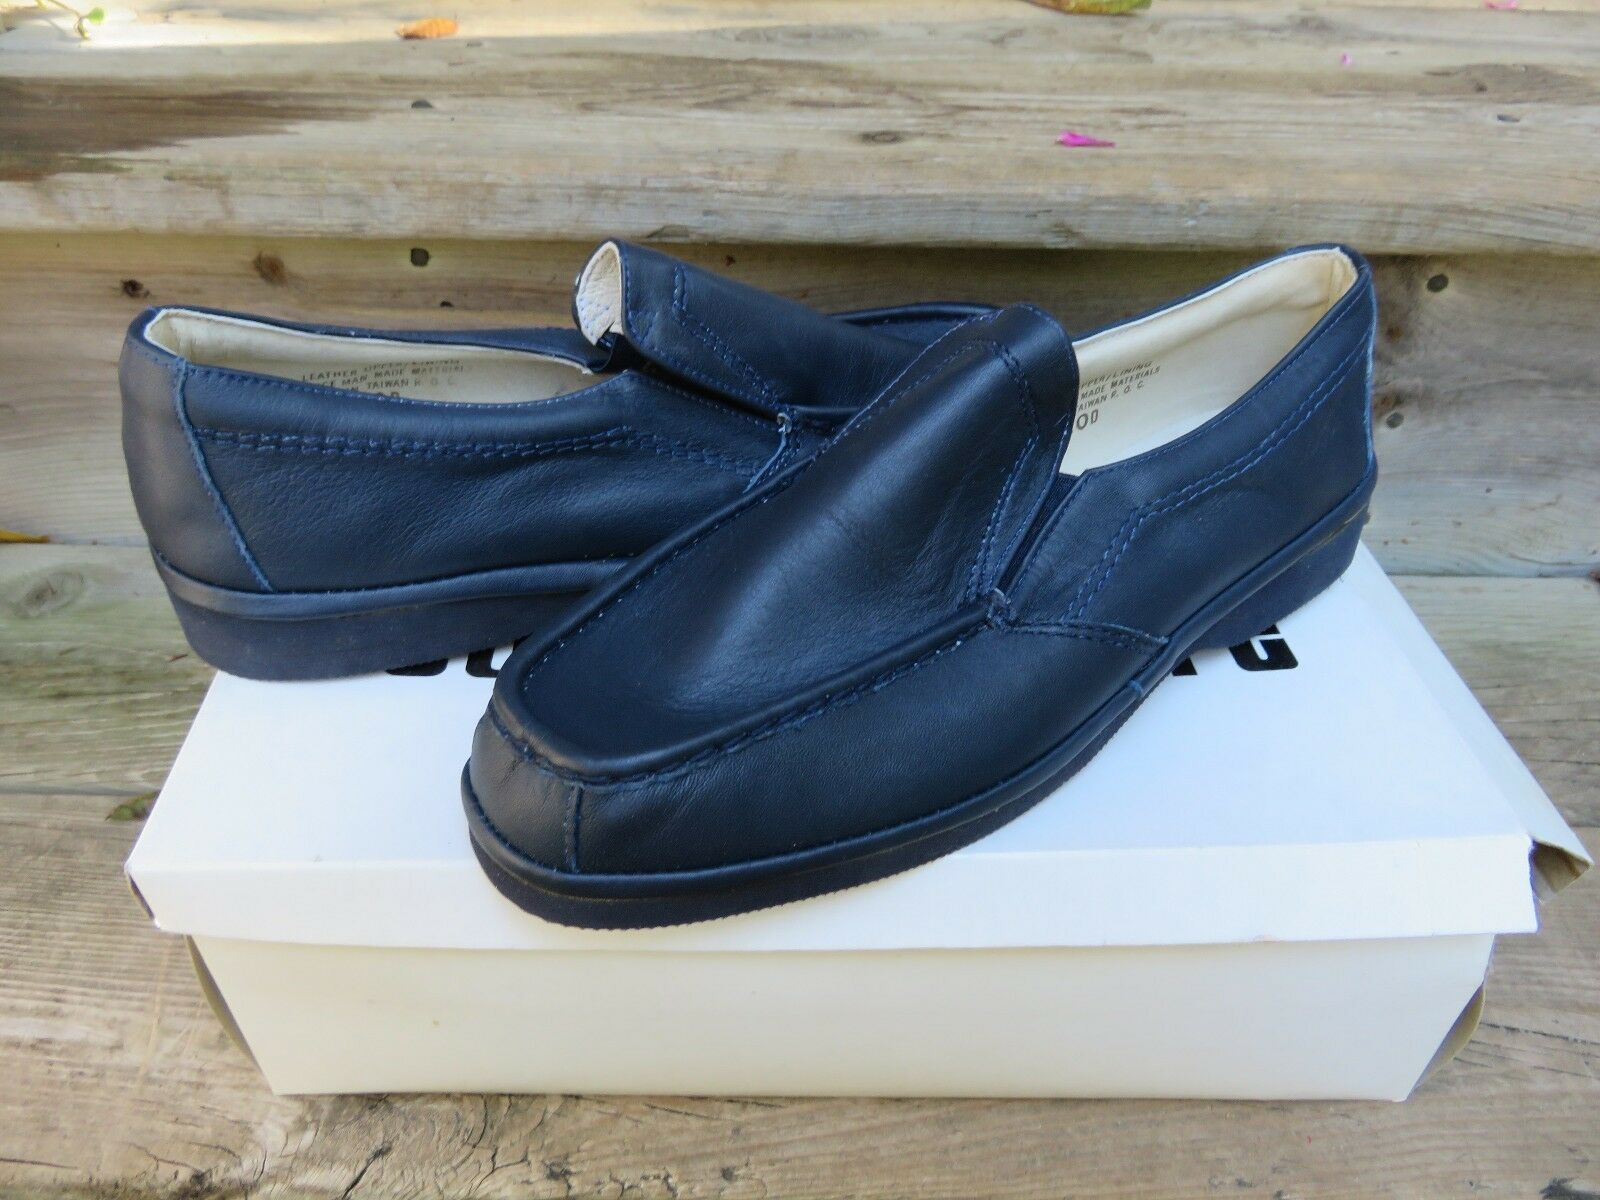 NEW Stuart McGuire Dark bluee Slip-on Loafer Casual shoes Size 4100 10 D